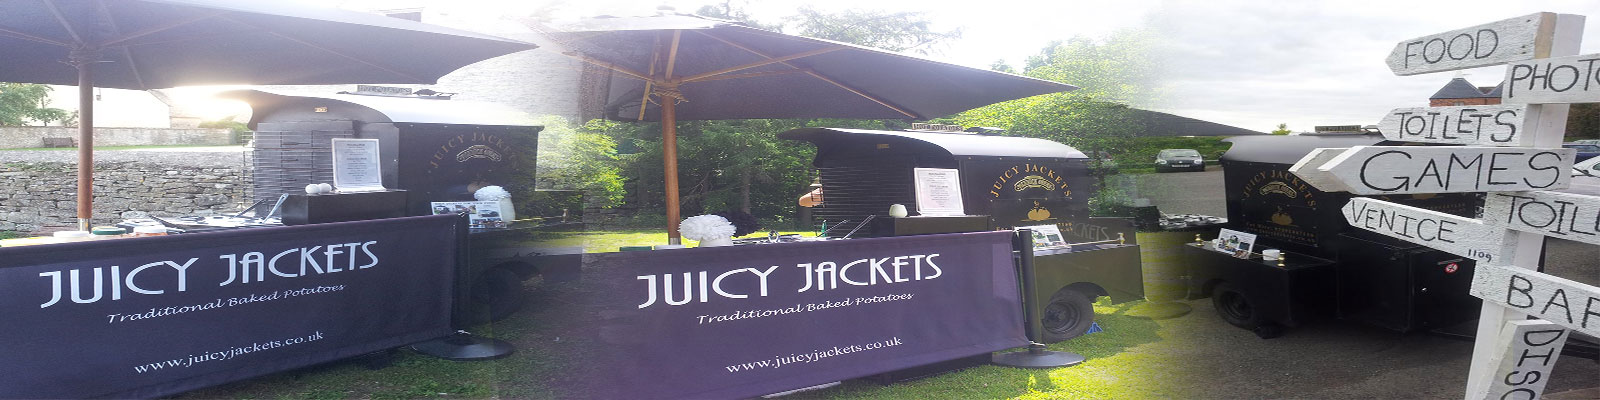 Get Your Juicy Jackets Quote